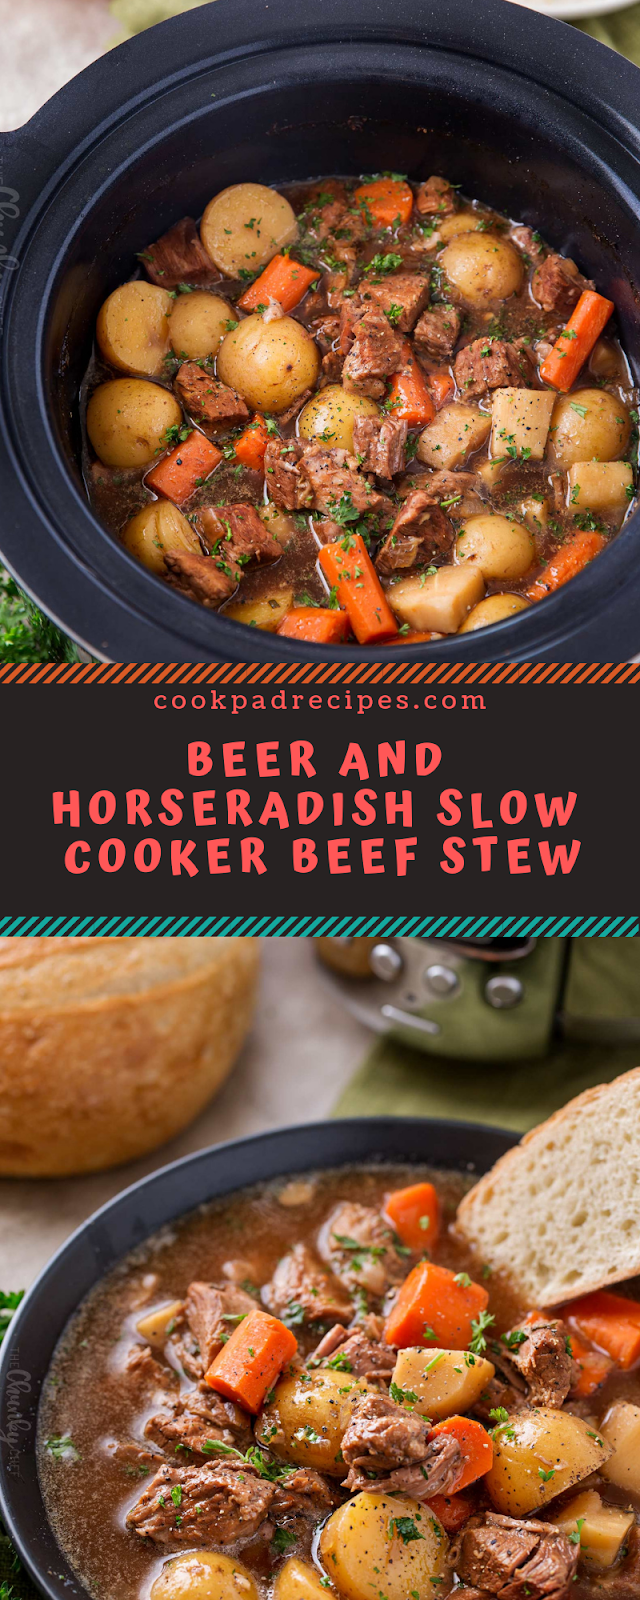 BEER AND HORSERADISH SLOW COOKER BEEF STEW